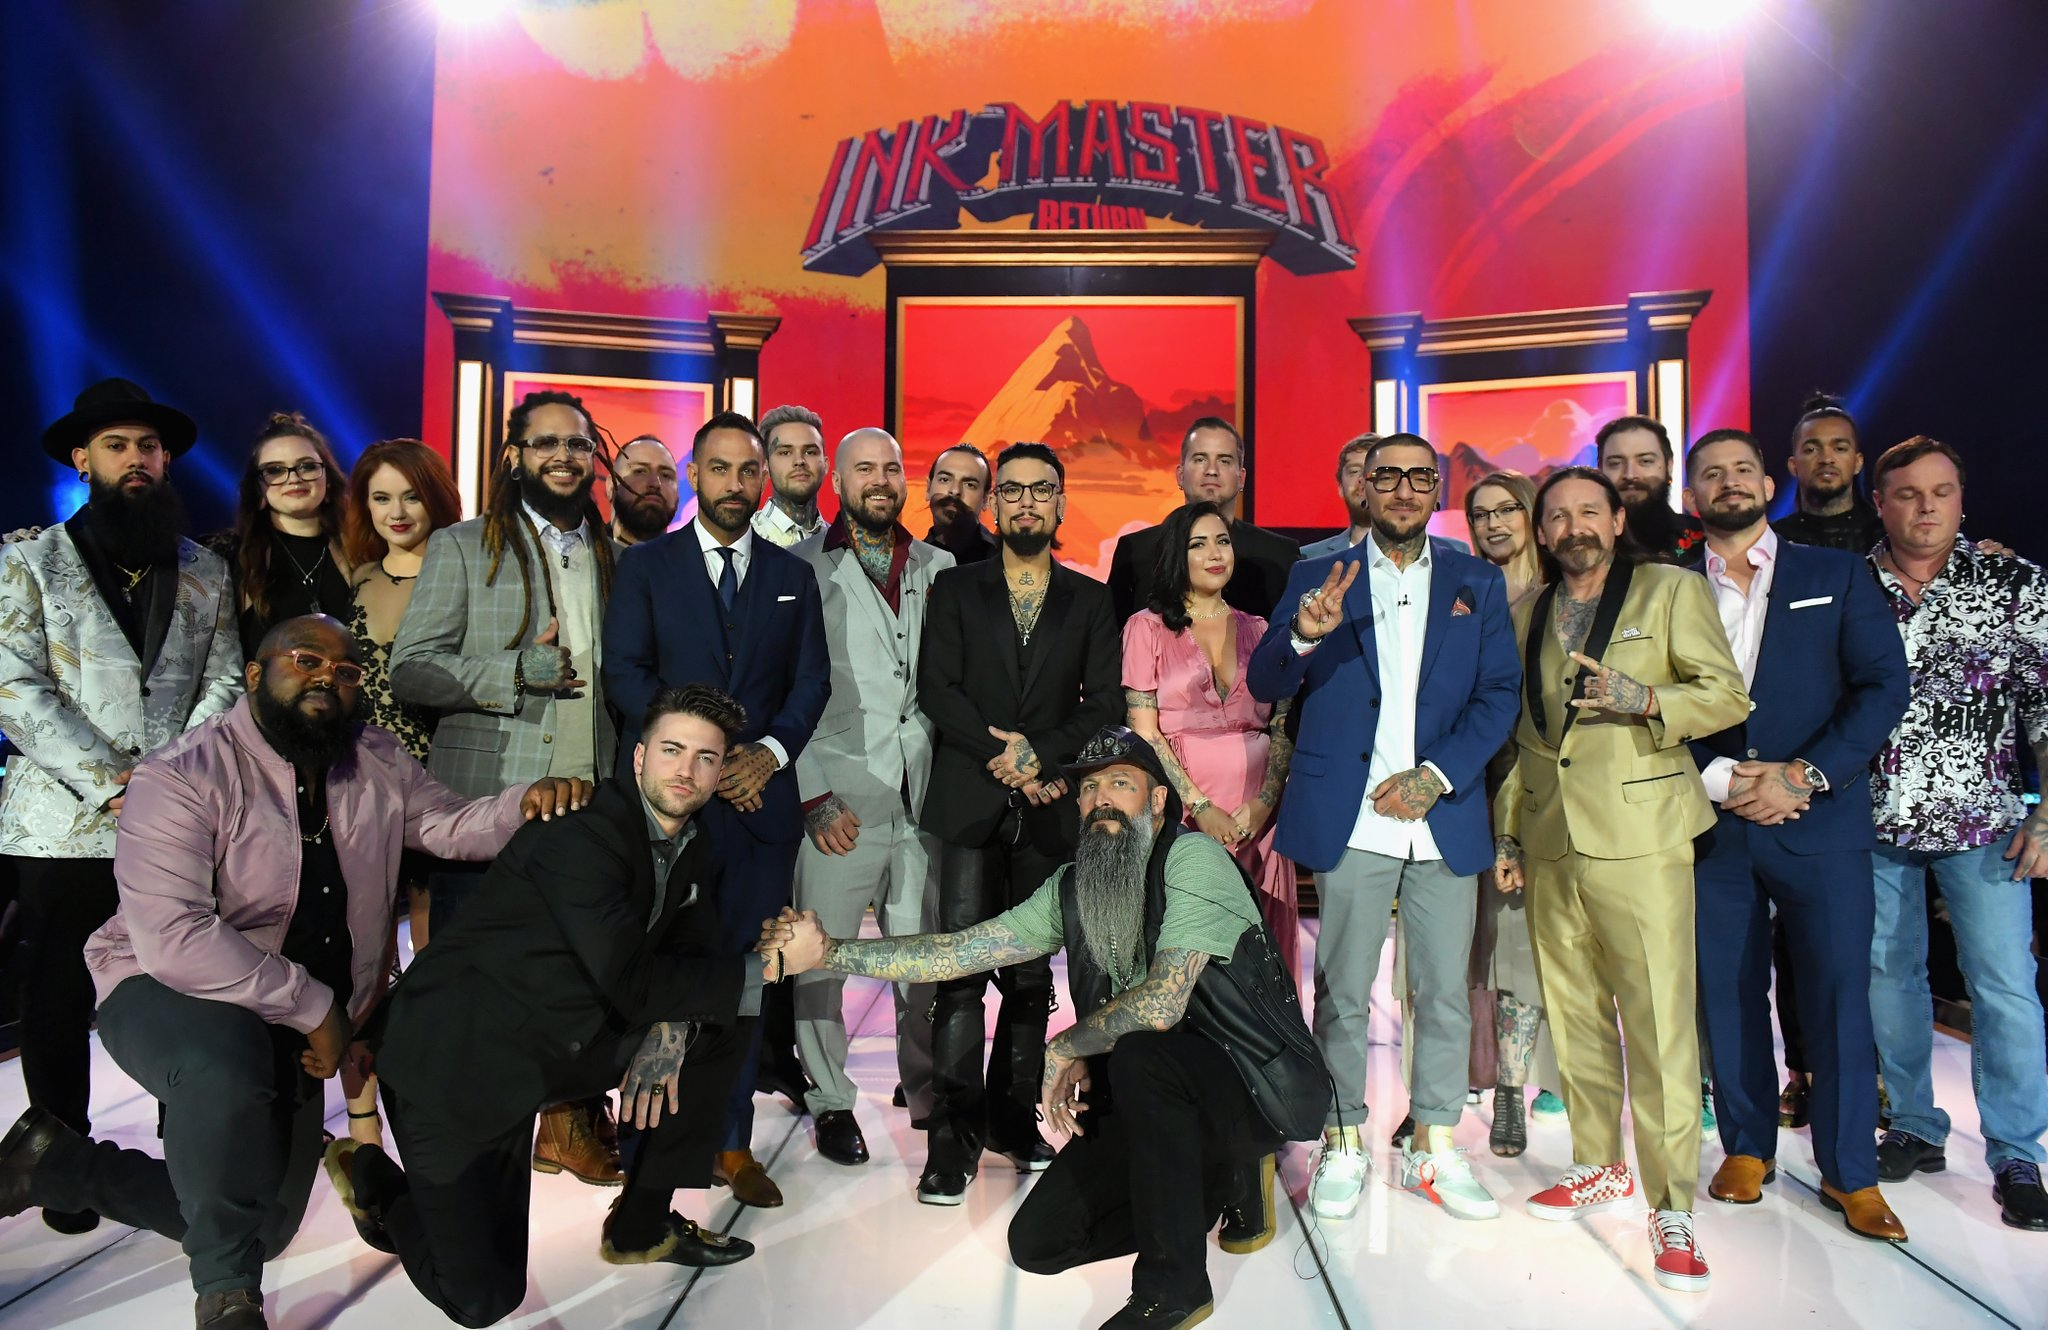 Live Finale of Ink Master: Return of the Masters